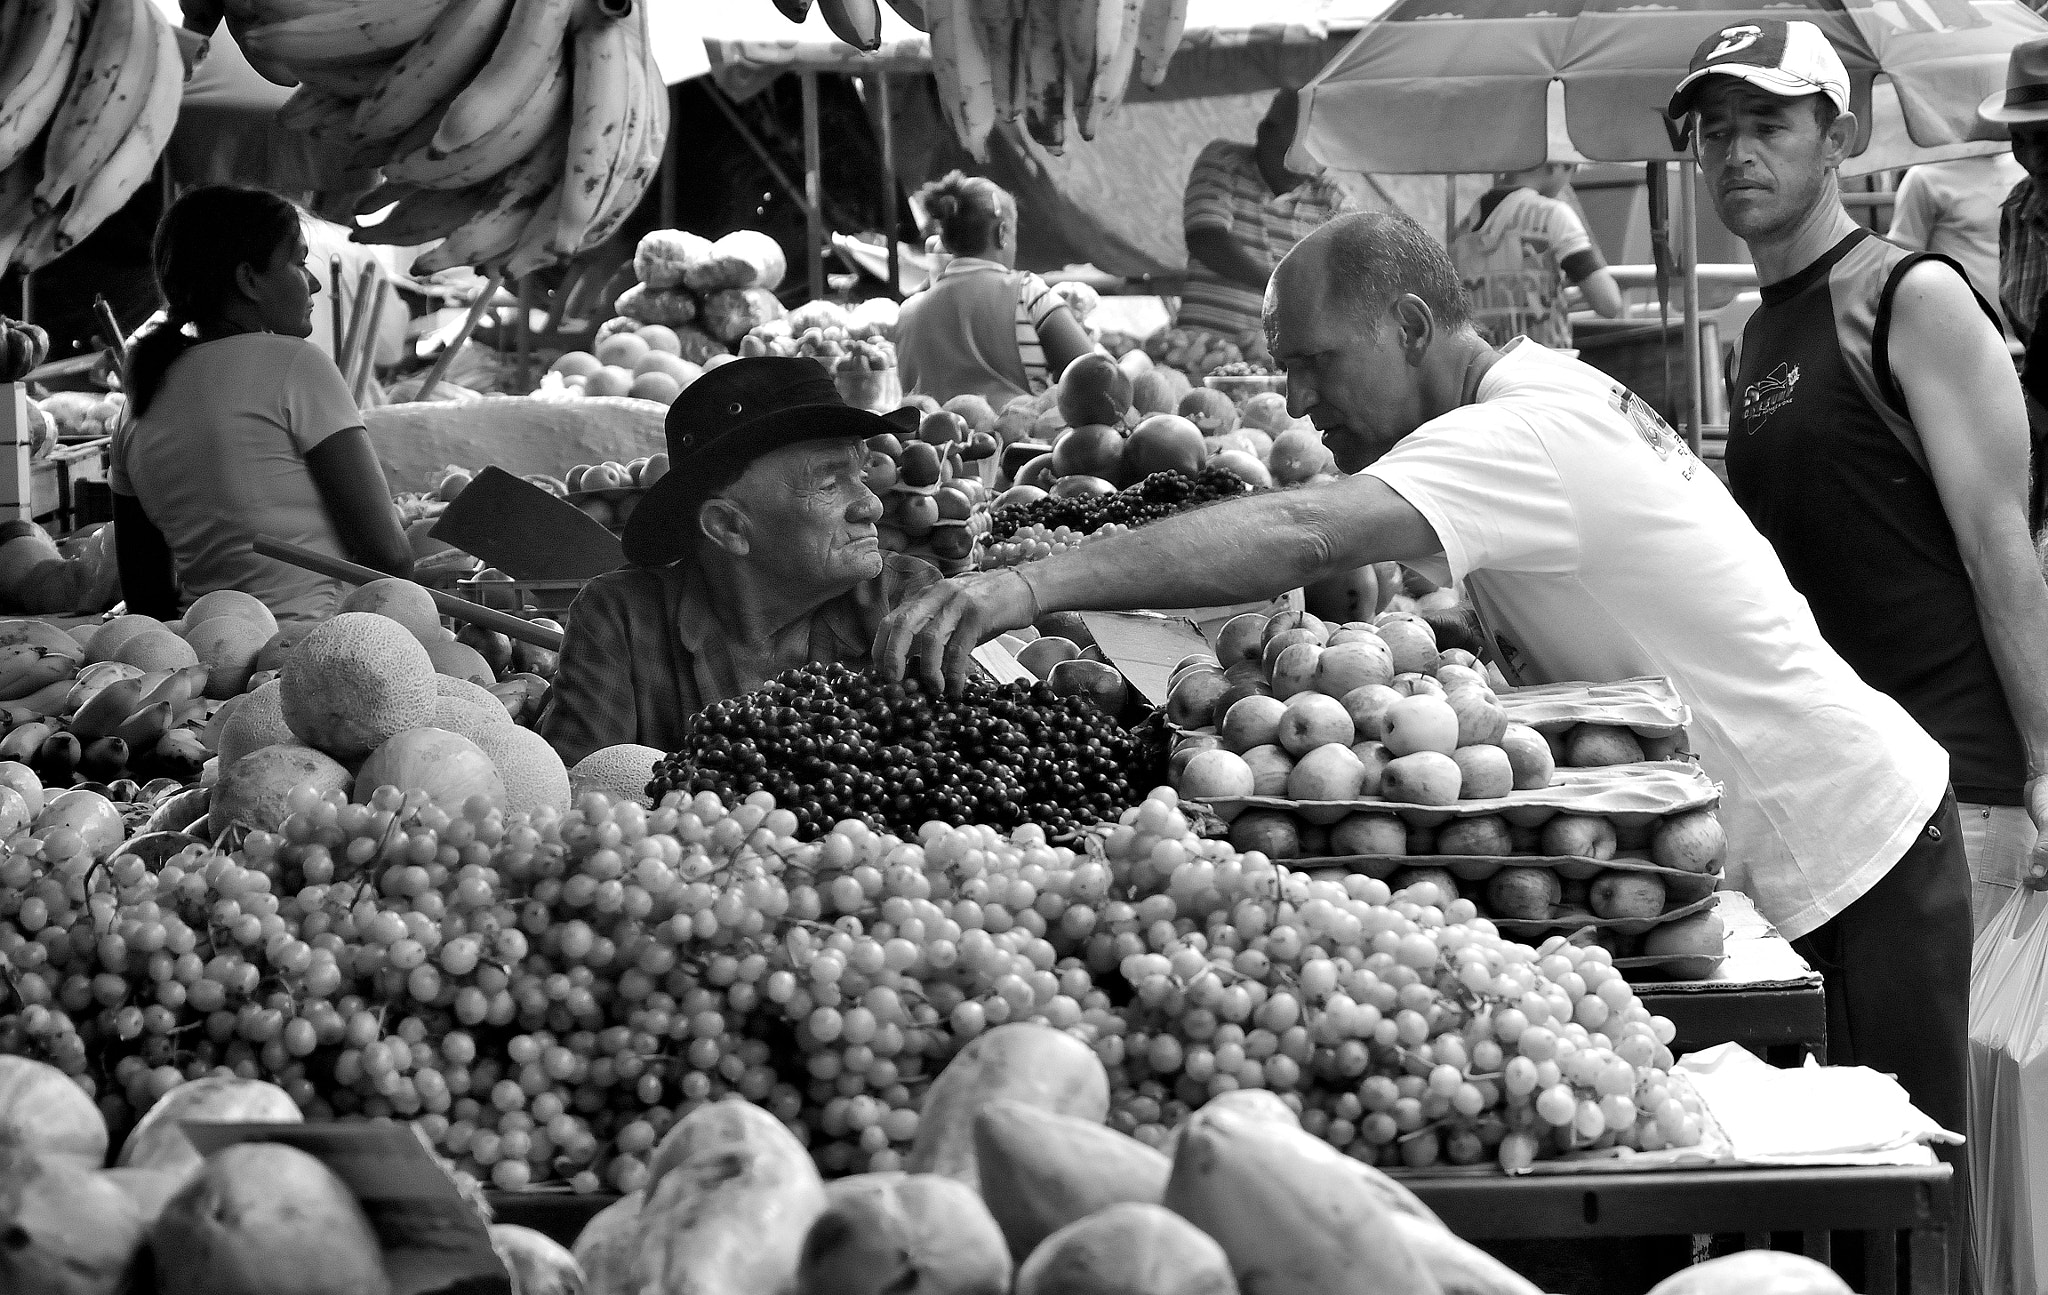 Photograph Fruit market by Helvio Silva on 500px